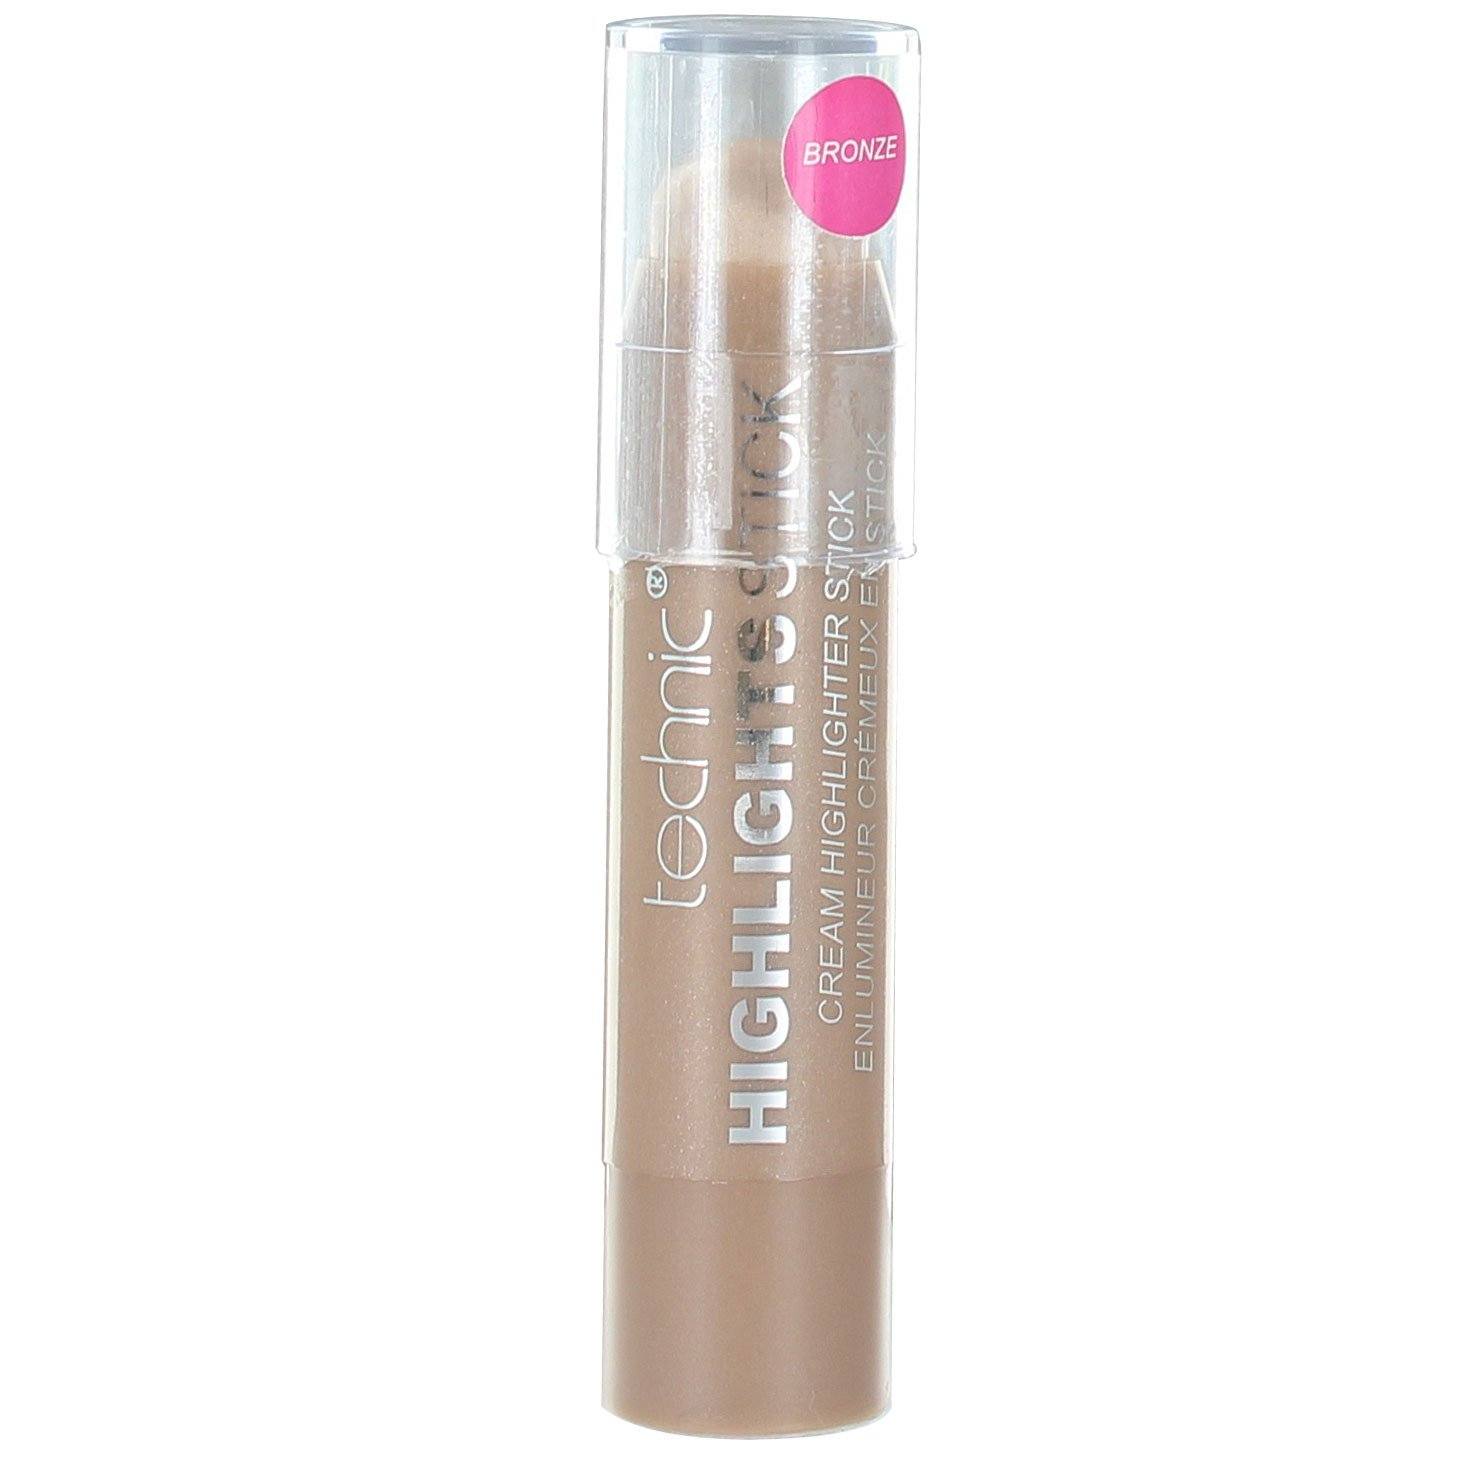 Technic Highlights Stick Cream Highlighter 7.3g-Bronze by Technic